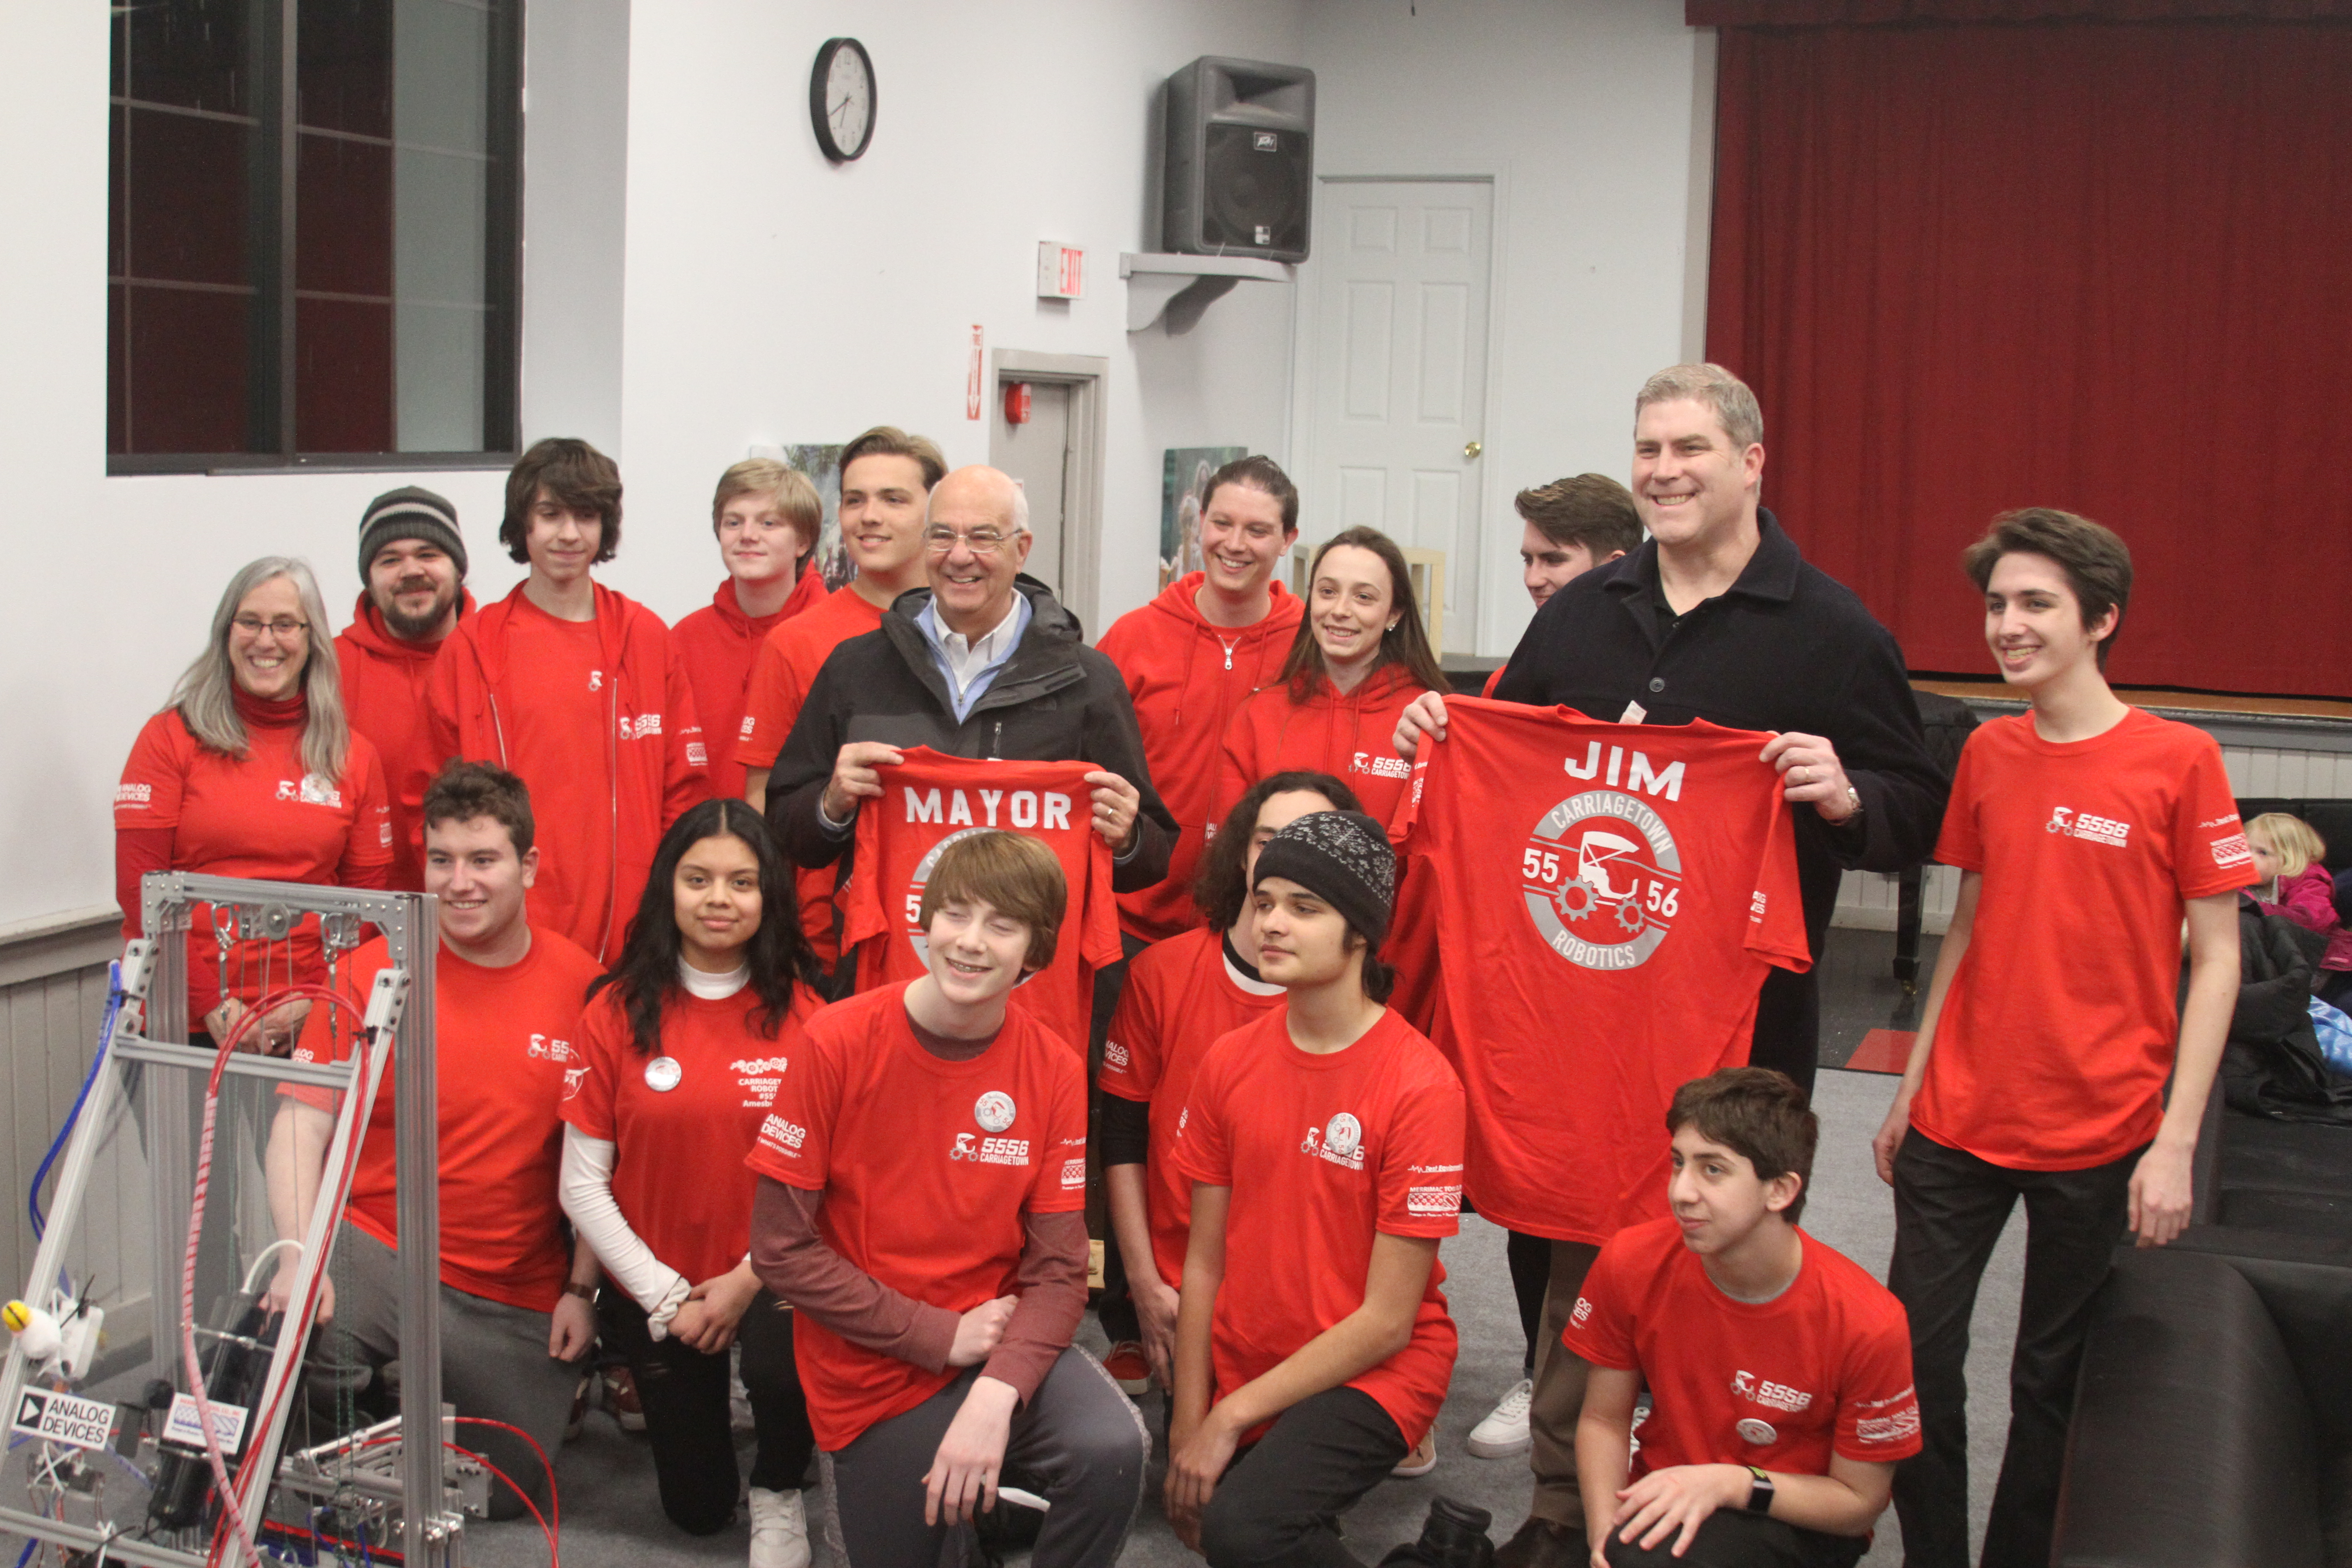 Sparhawk FIRST robotics team posing for a photo with State Senator, James Kelcourse.